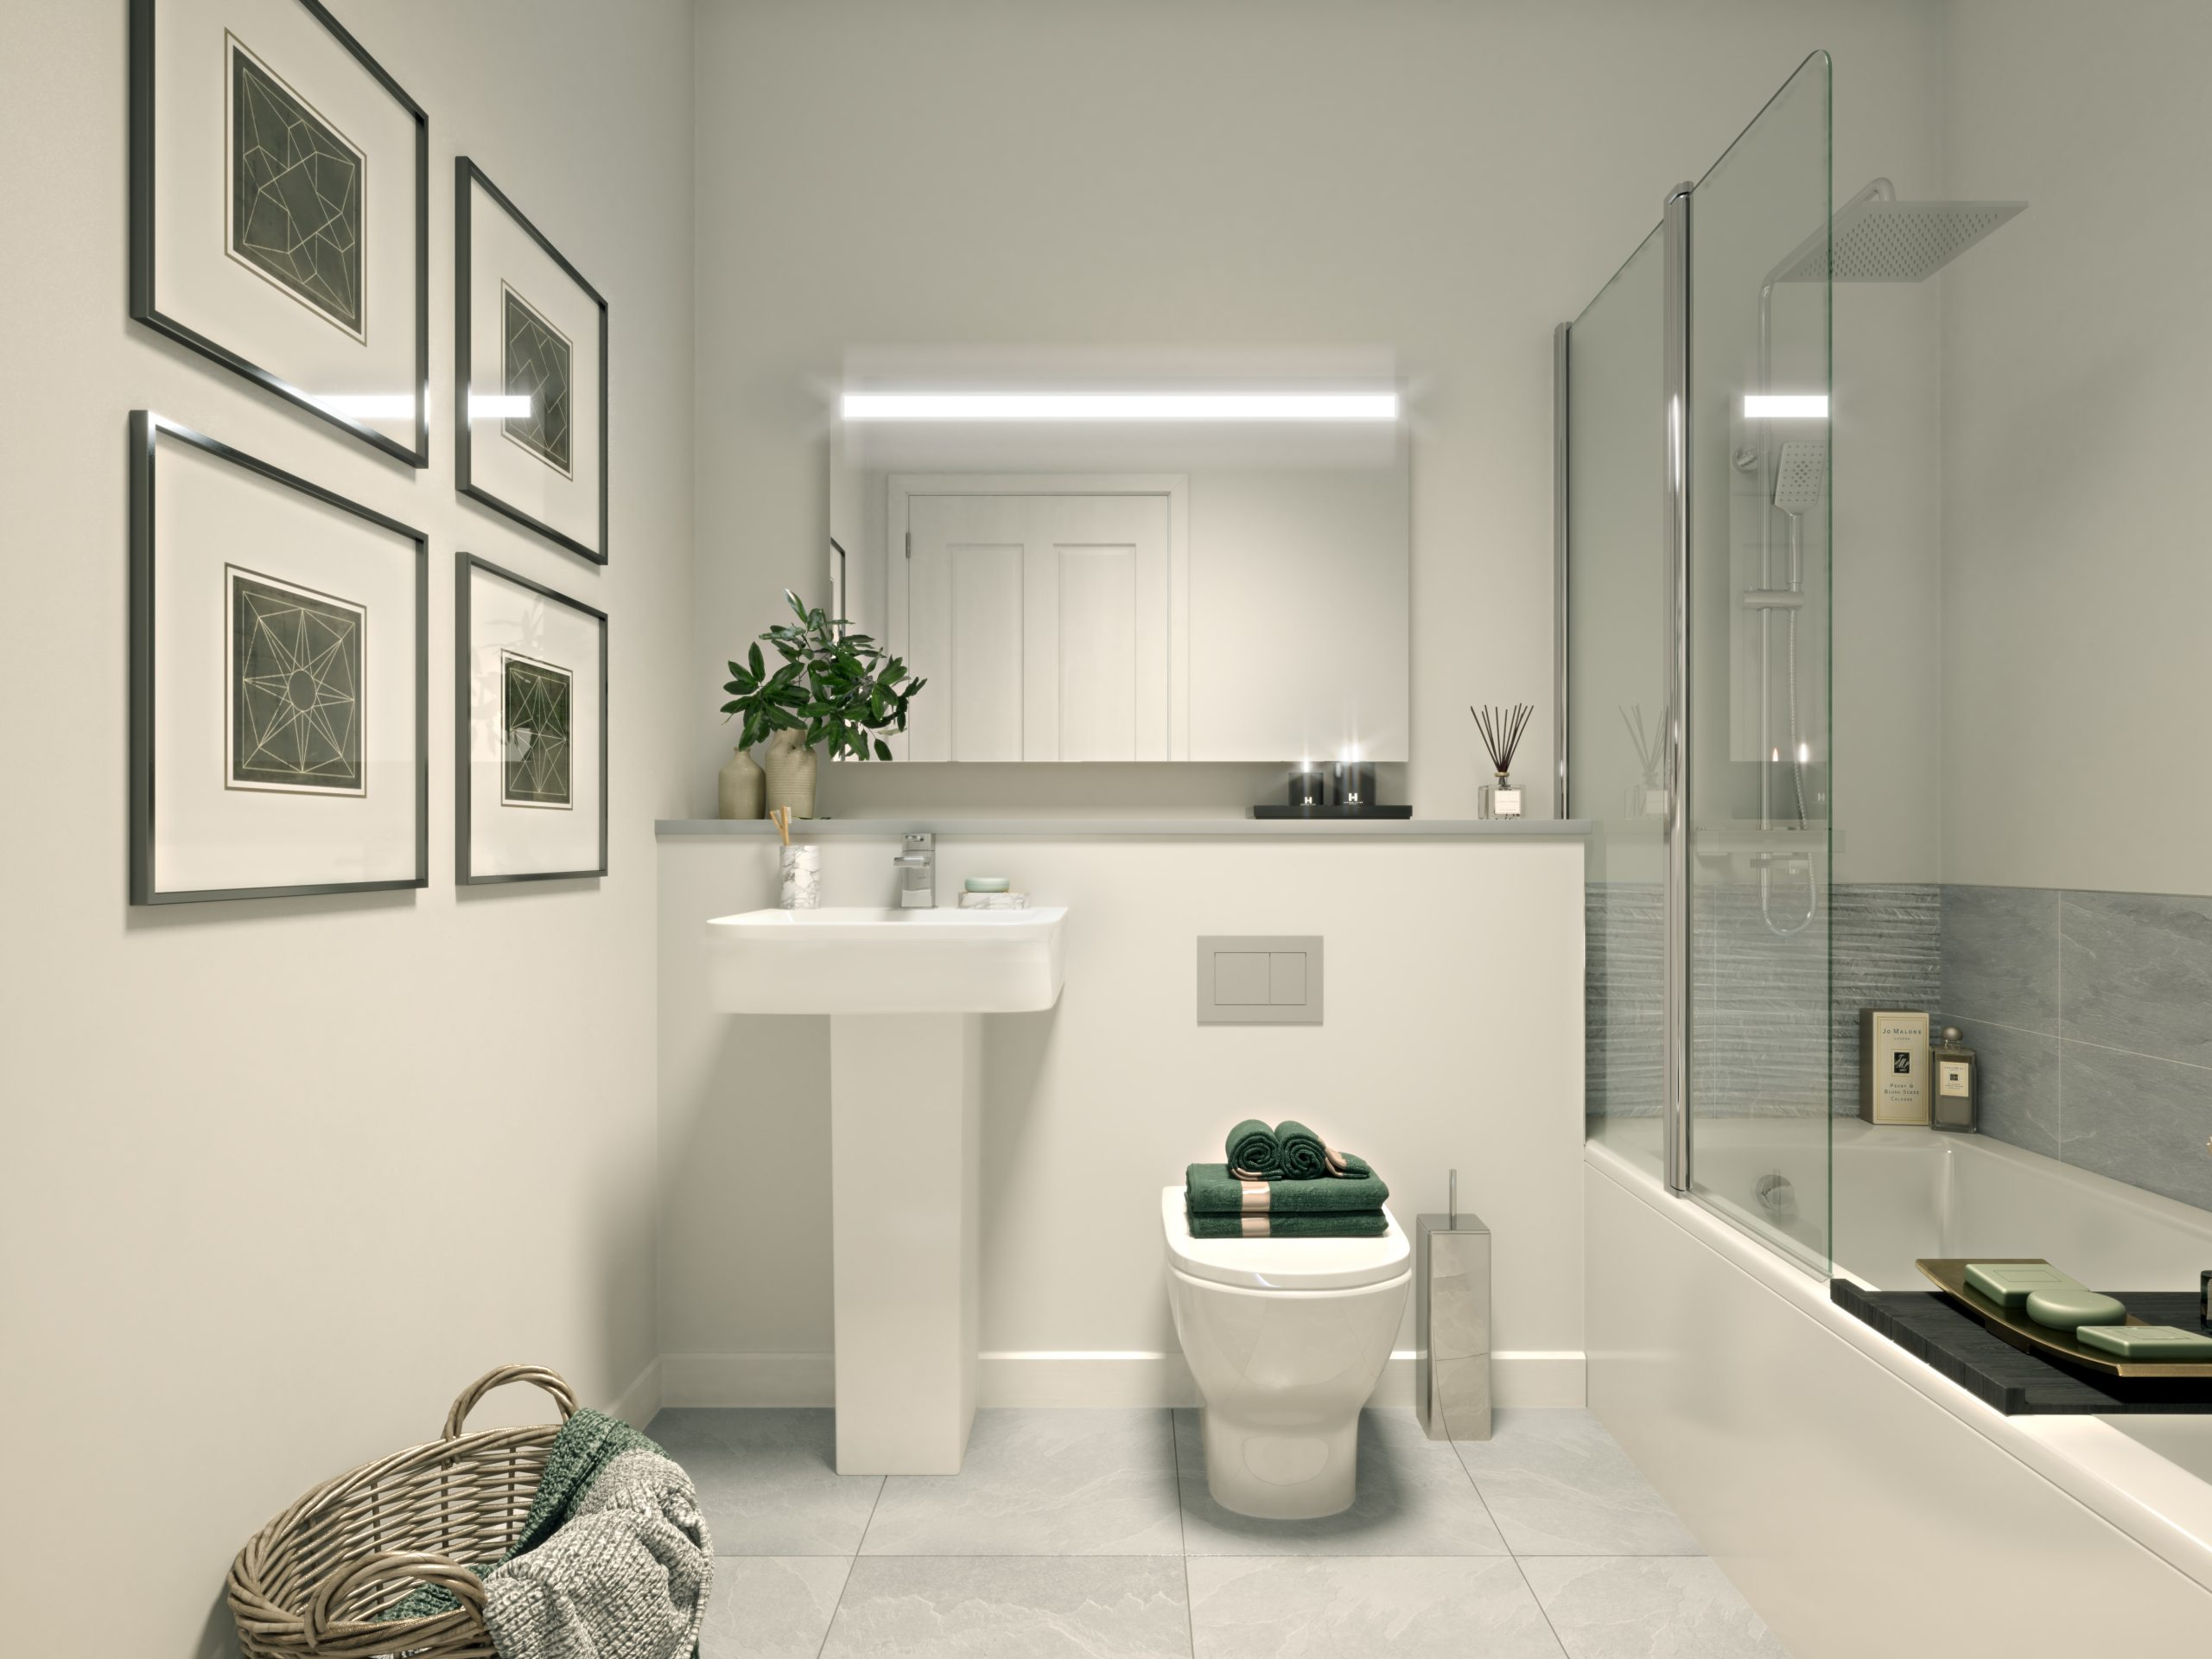 Bathroom CGI